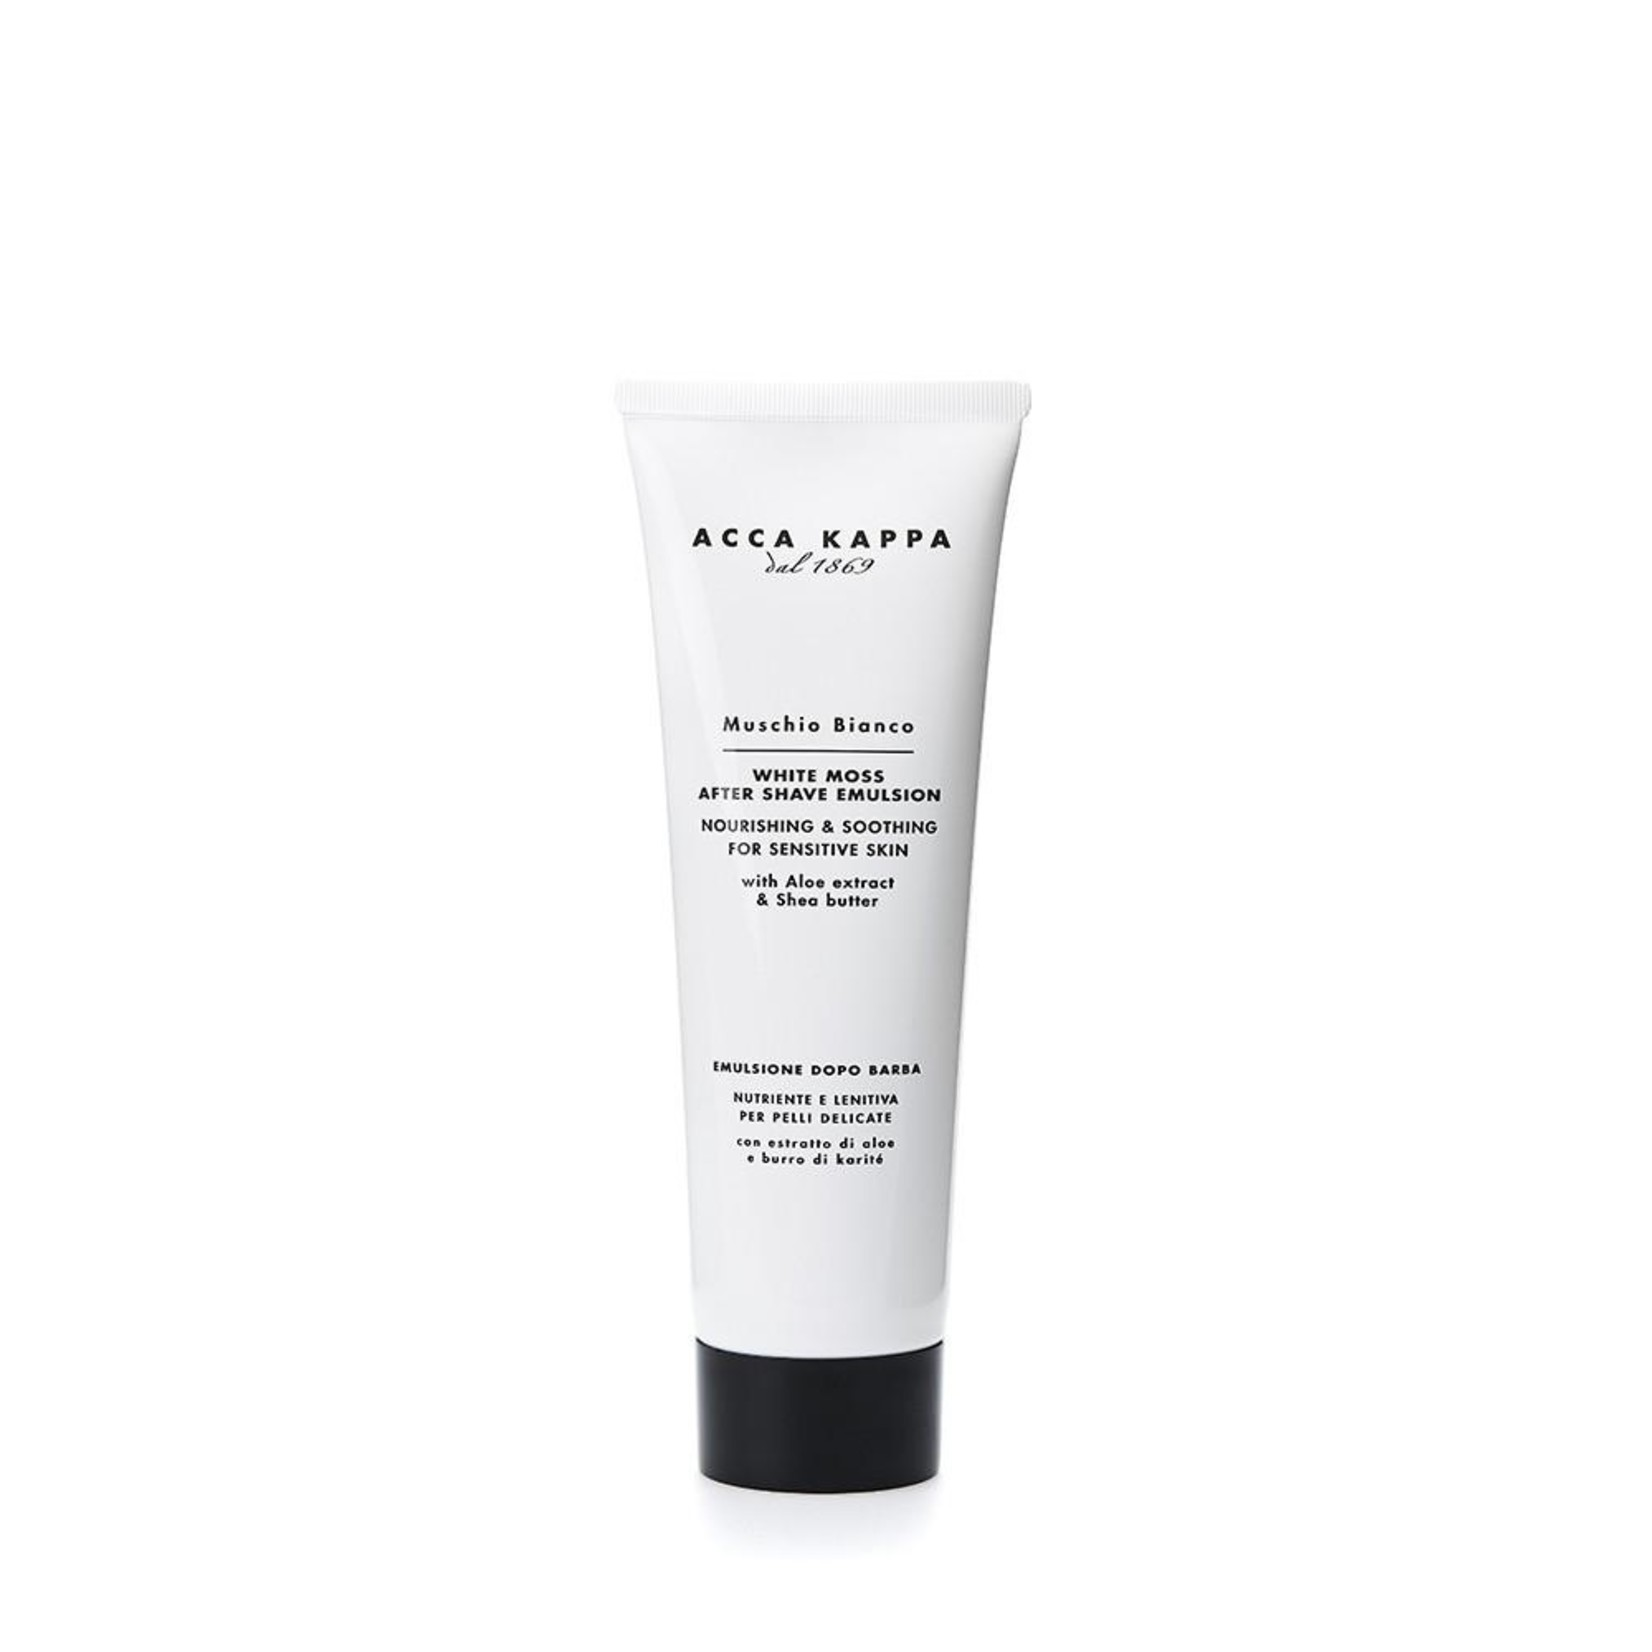 ACCA KAPPA ACCA KAPPA · WHITE MOSS AFTER SHAVE EMULSION 125ML